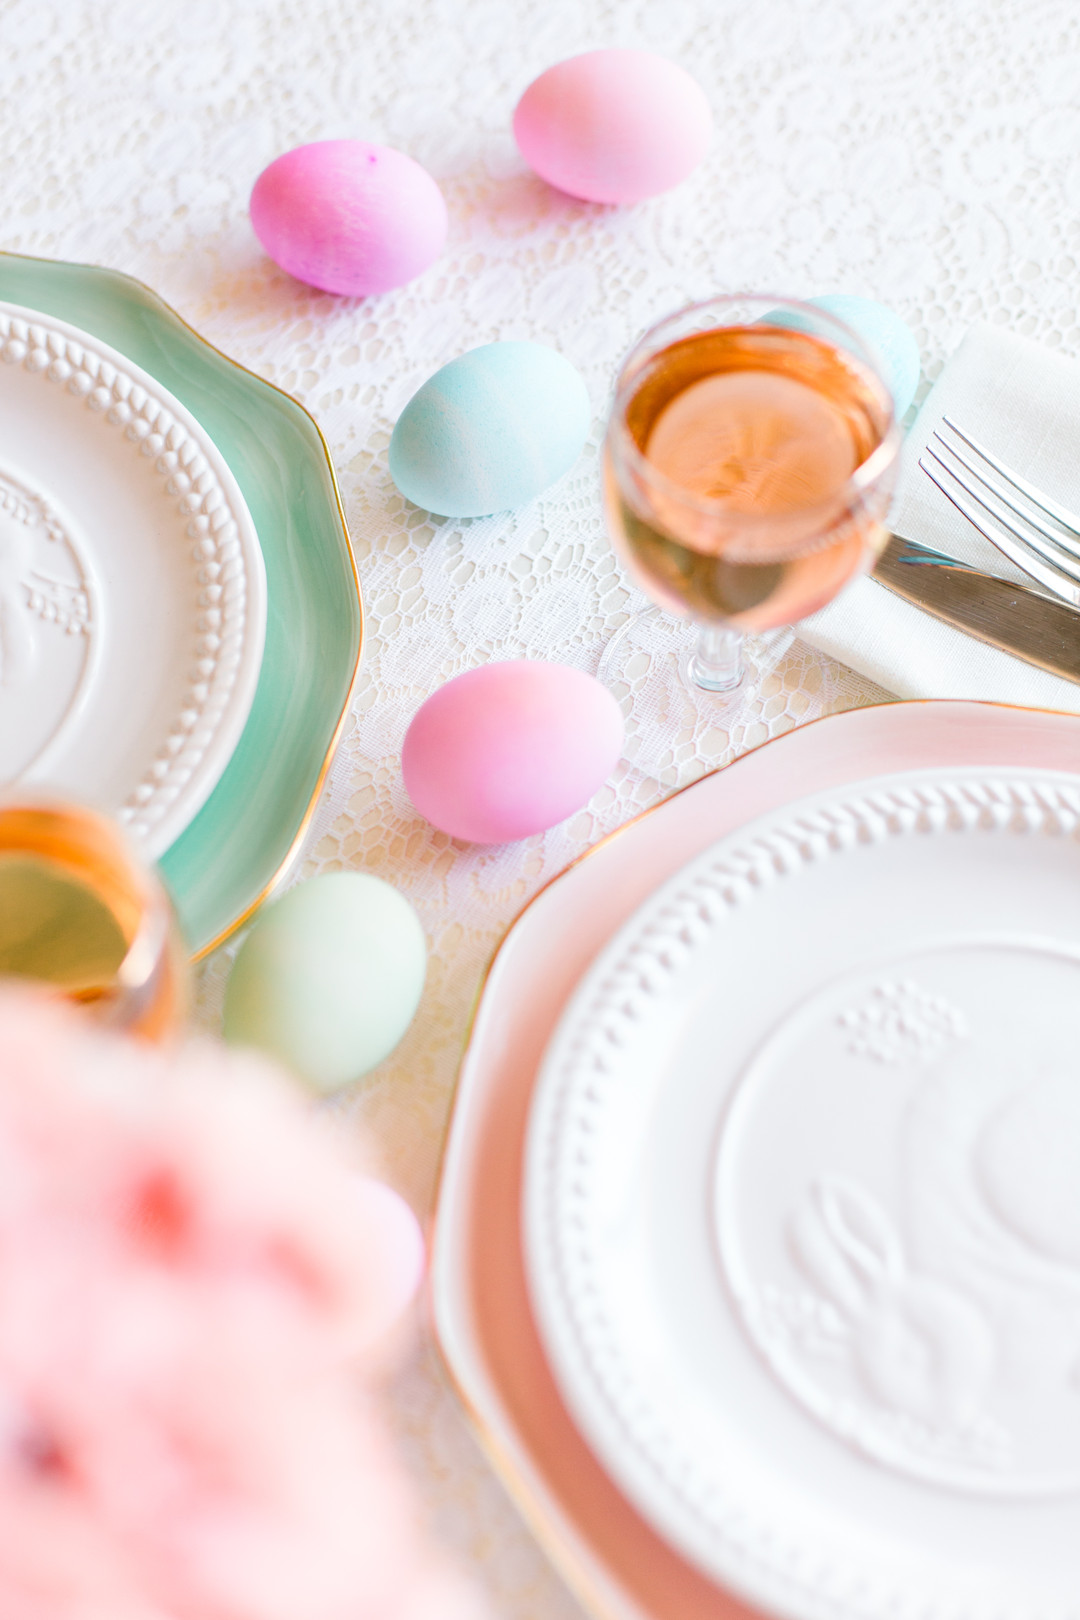 Staal_KristinaStaalPhotography_KristinaStaalPhotographyEasterTablescape201620_big Easy Entertaining: Easter Brunch Inspiration for Two